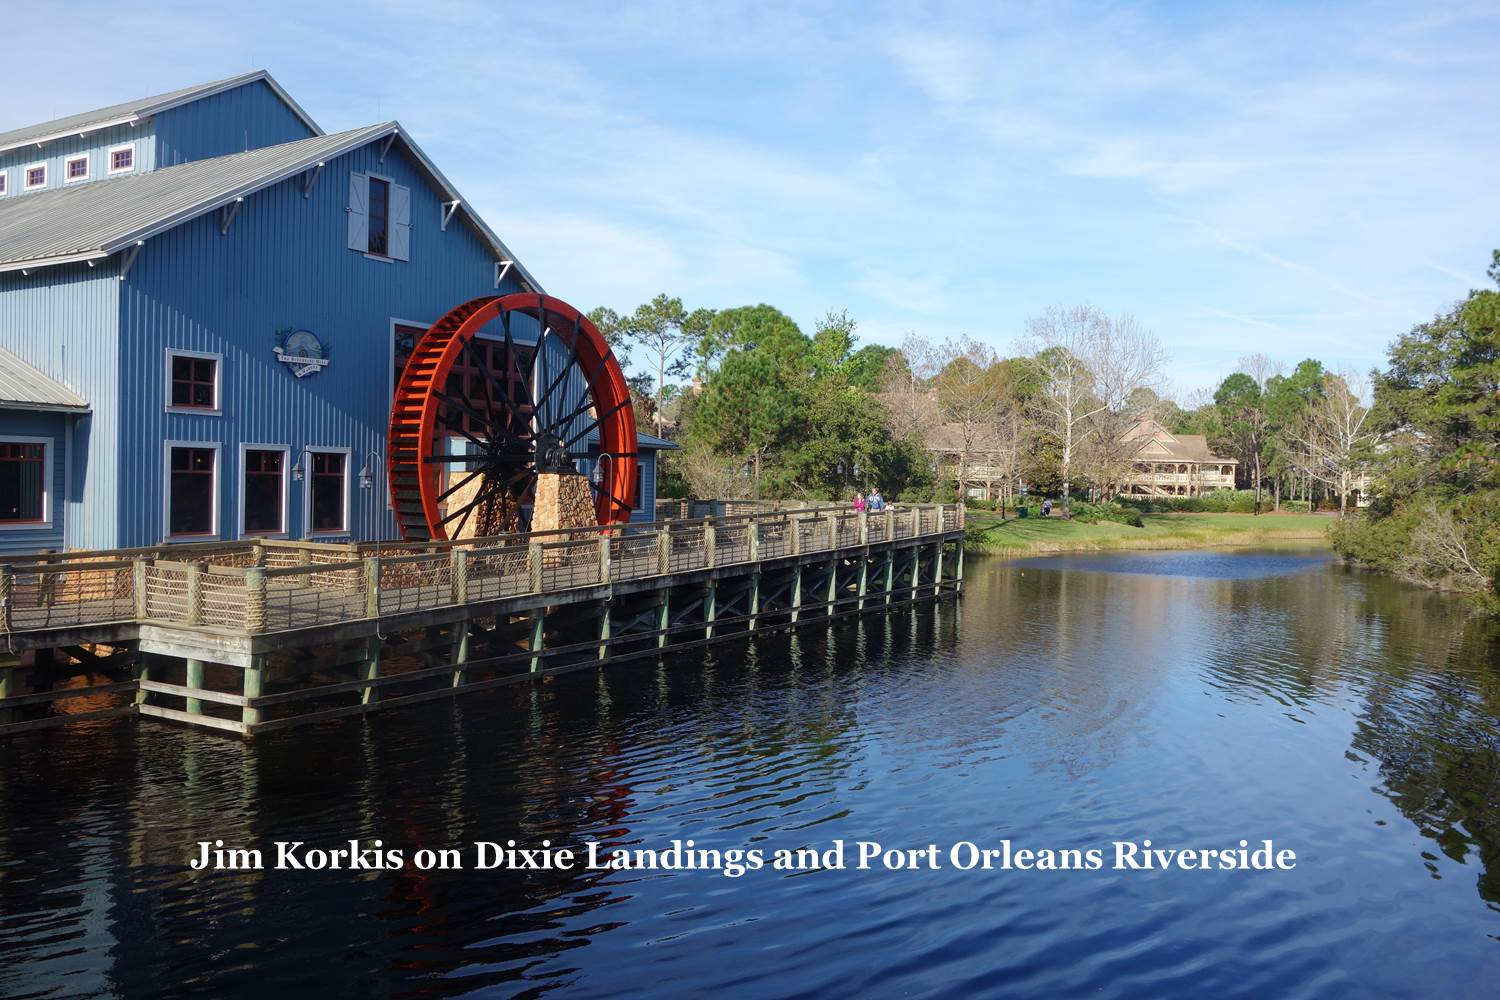 Jim Korkis on Port Orleans Riverside from yourfirstvisit.net